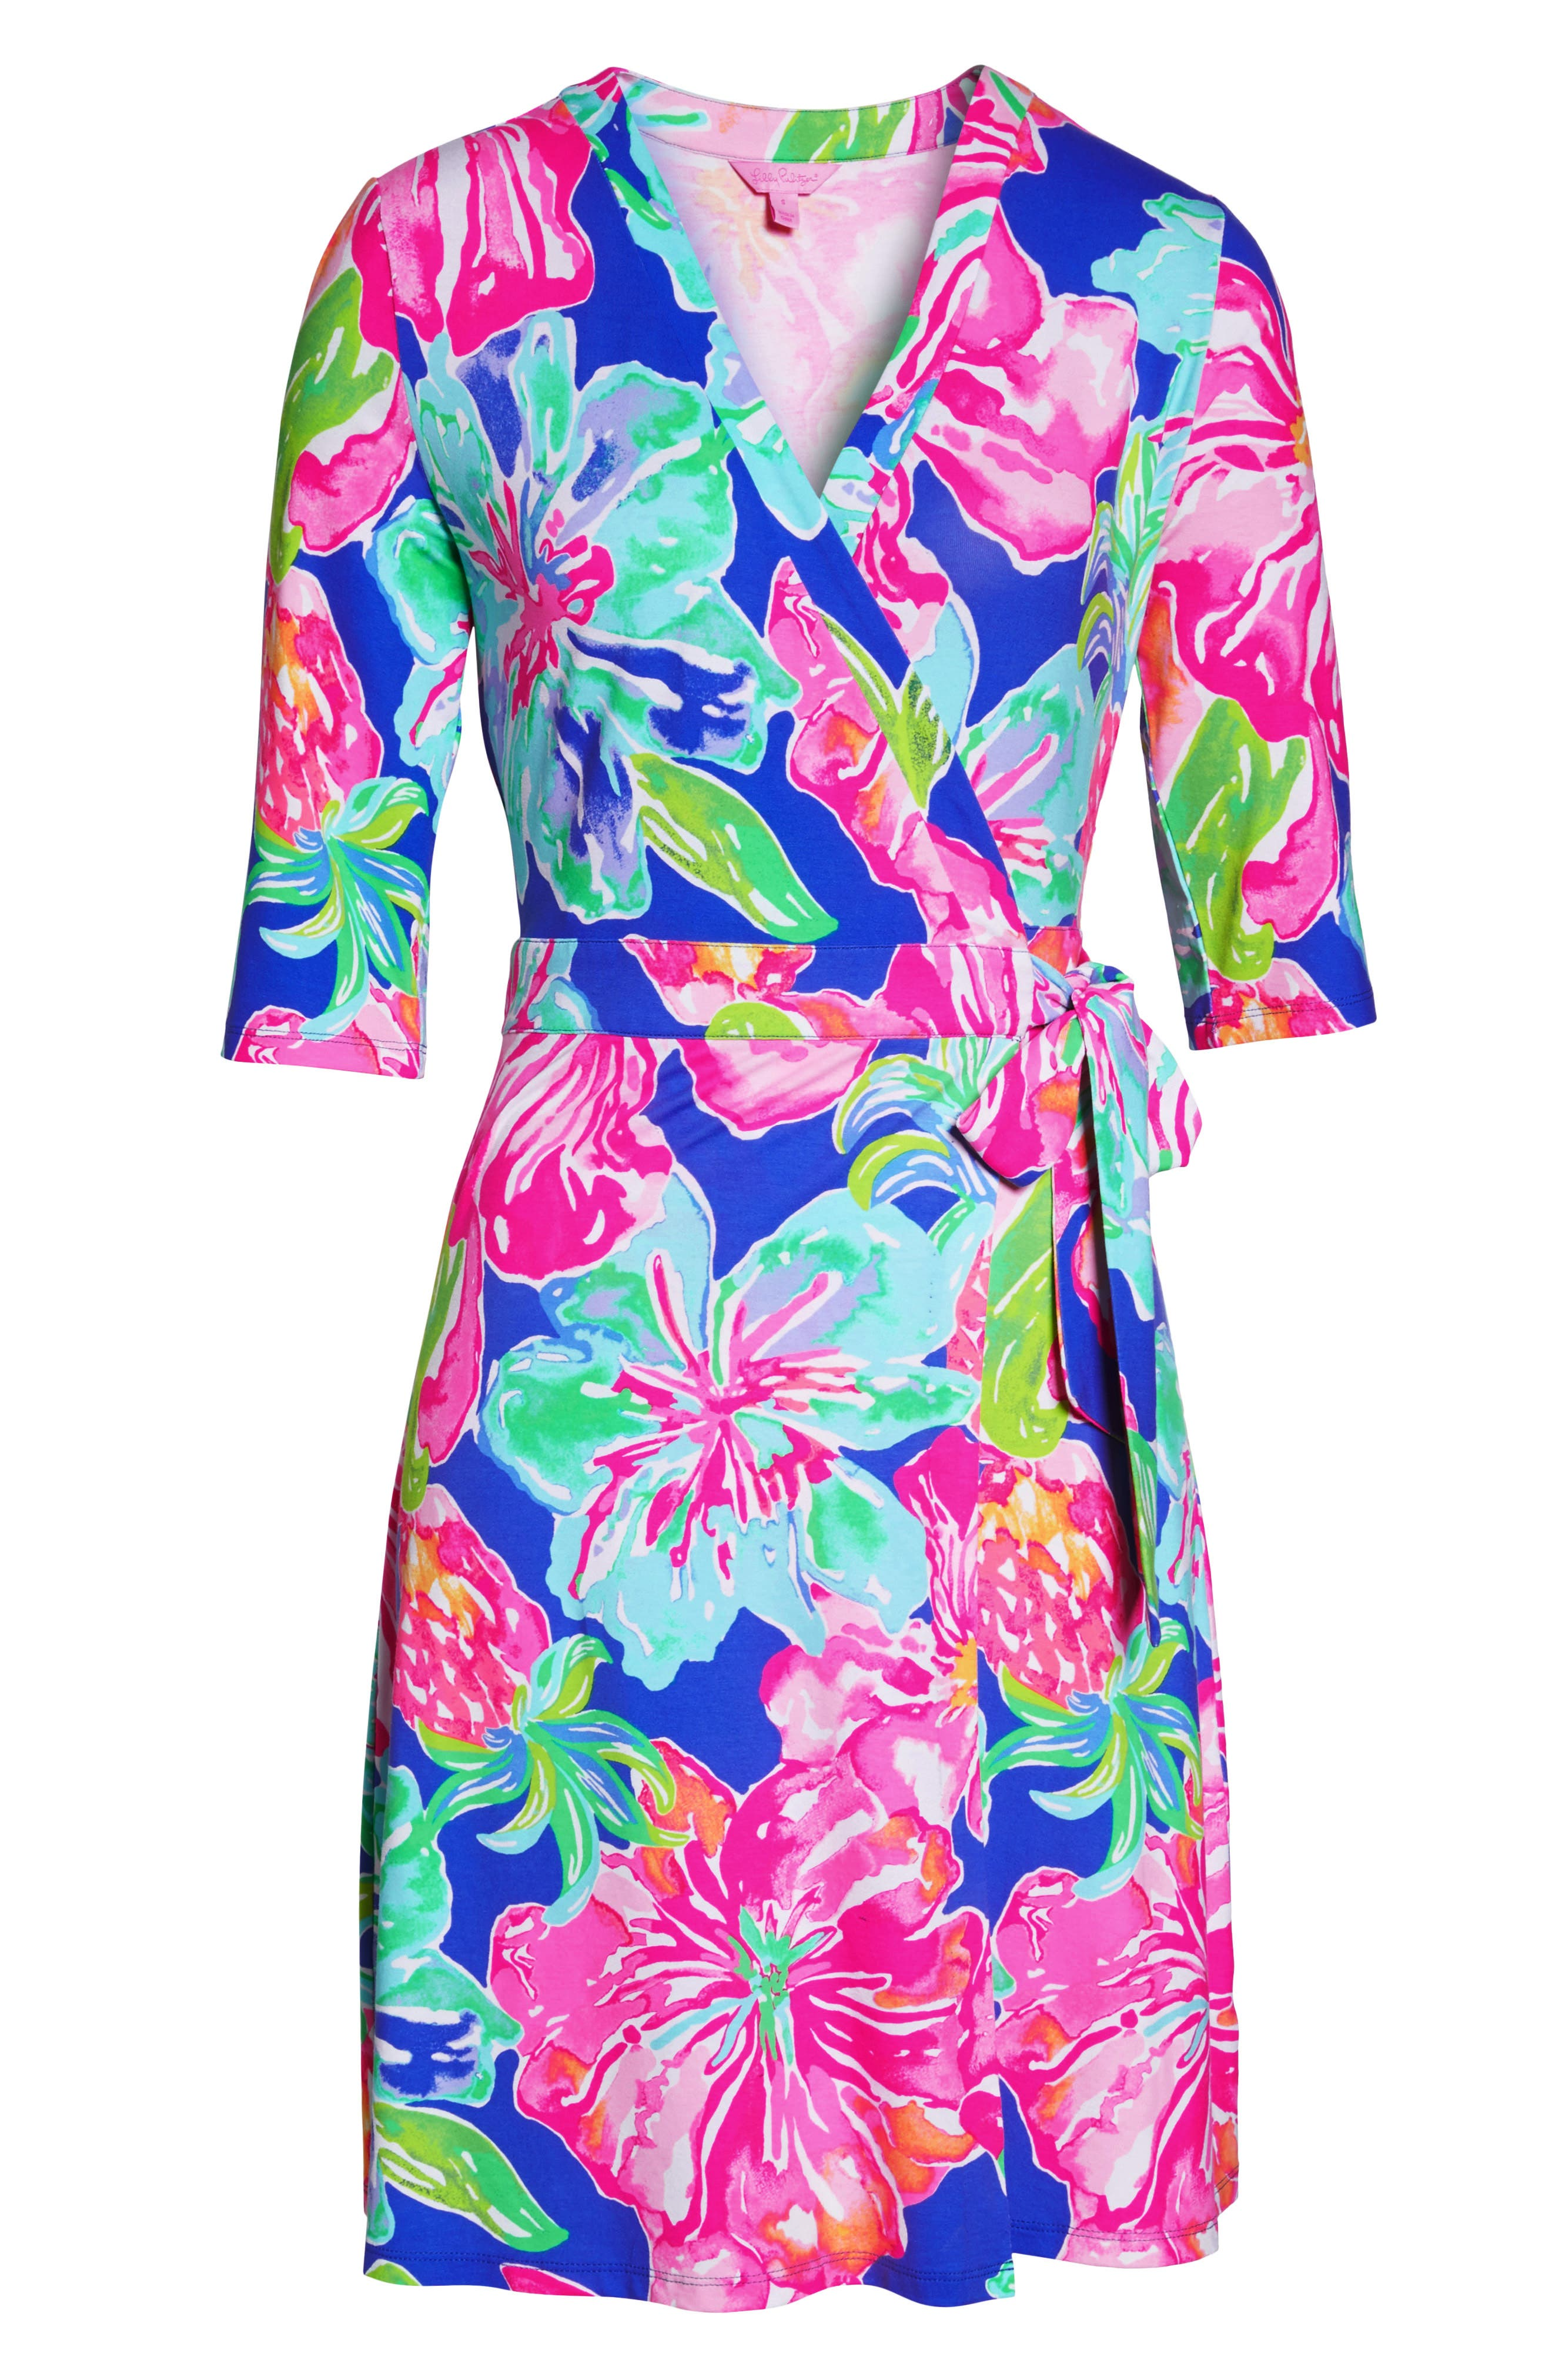 Marvista Wrap Dress,                             Alternate thumbnail 7, color,                             BECKON BLUE JUNGLE UTOPIA